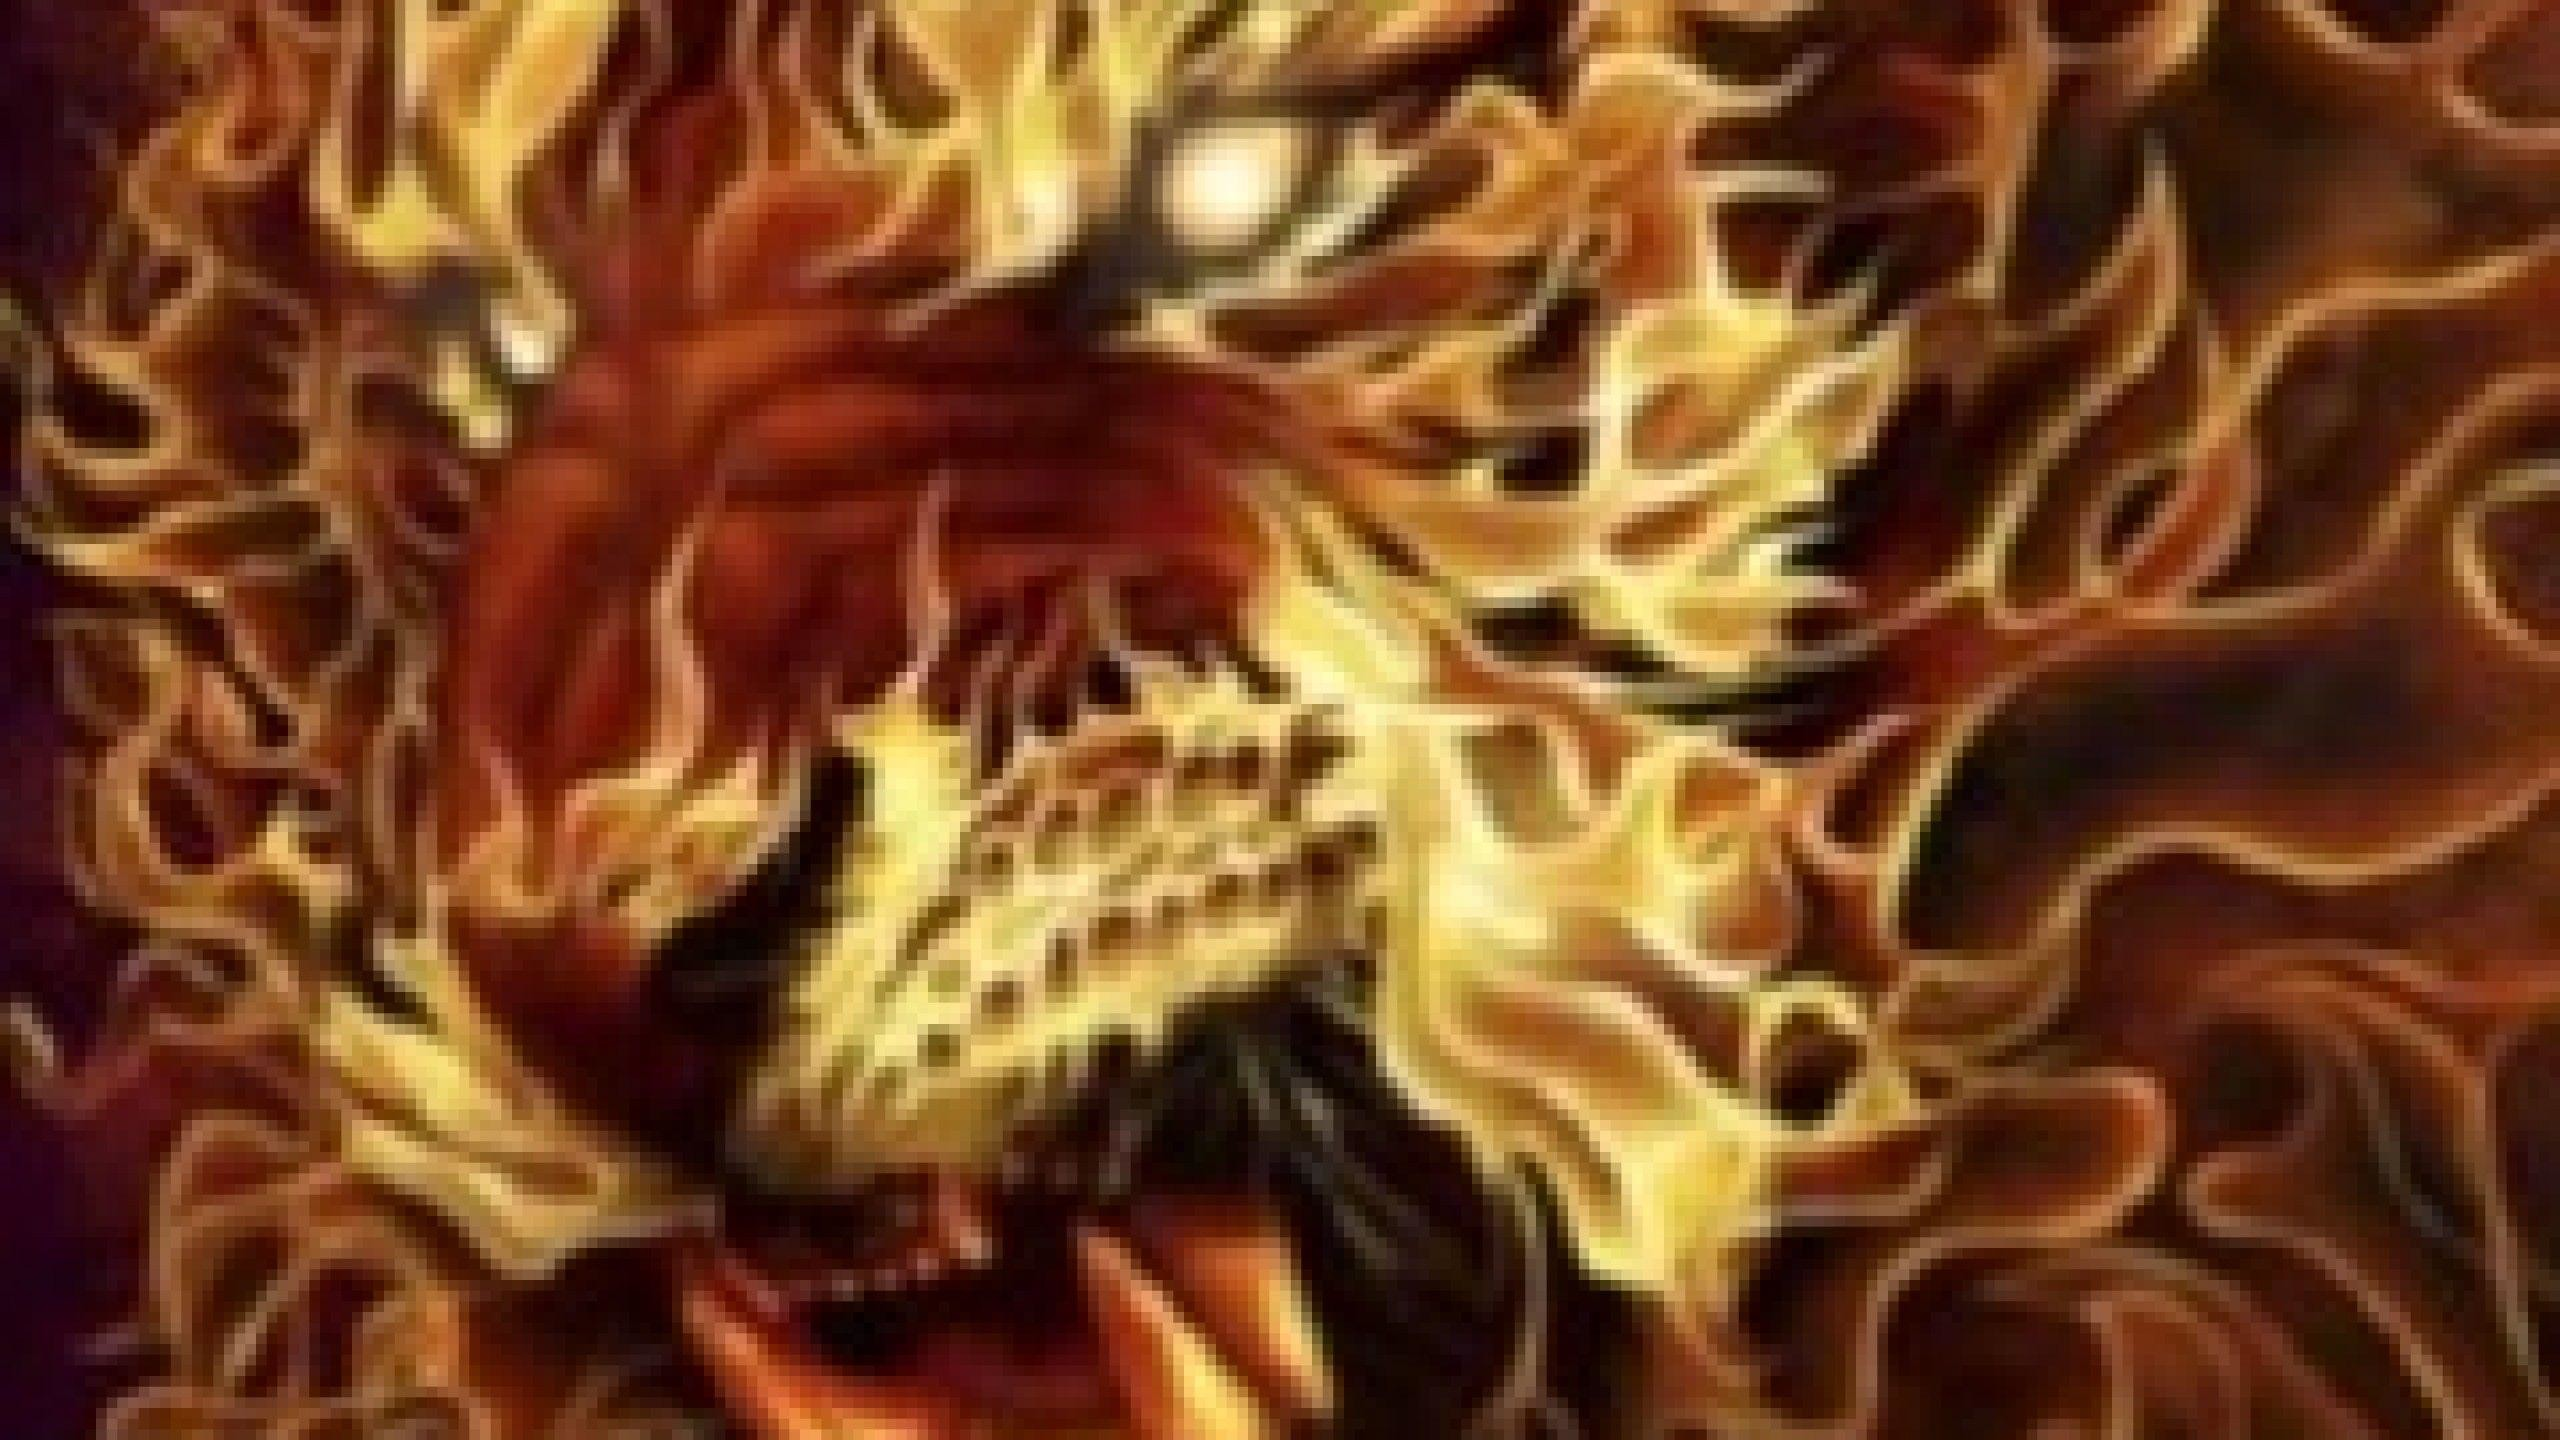 Lion Hd Wallpapers Page 2 Images Pictures